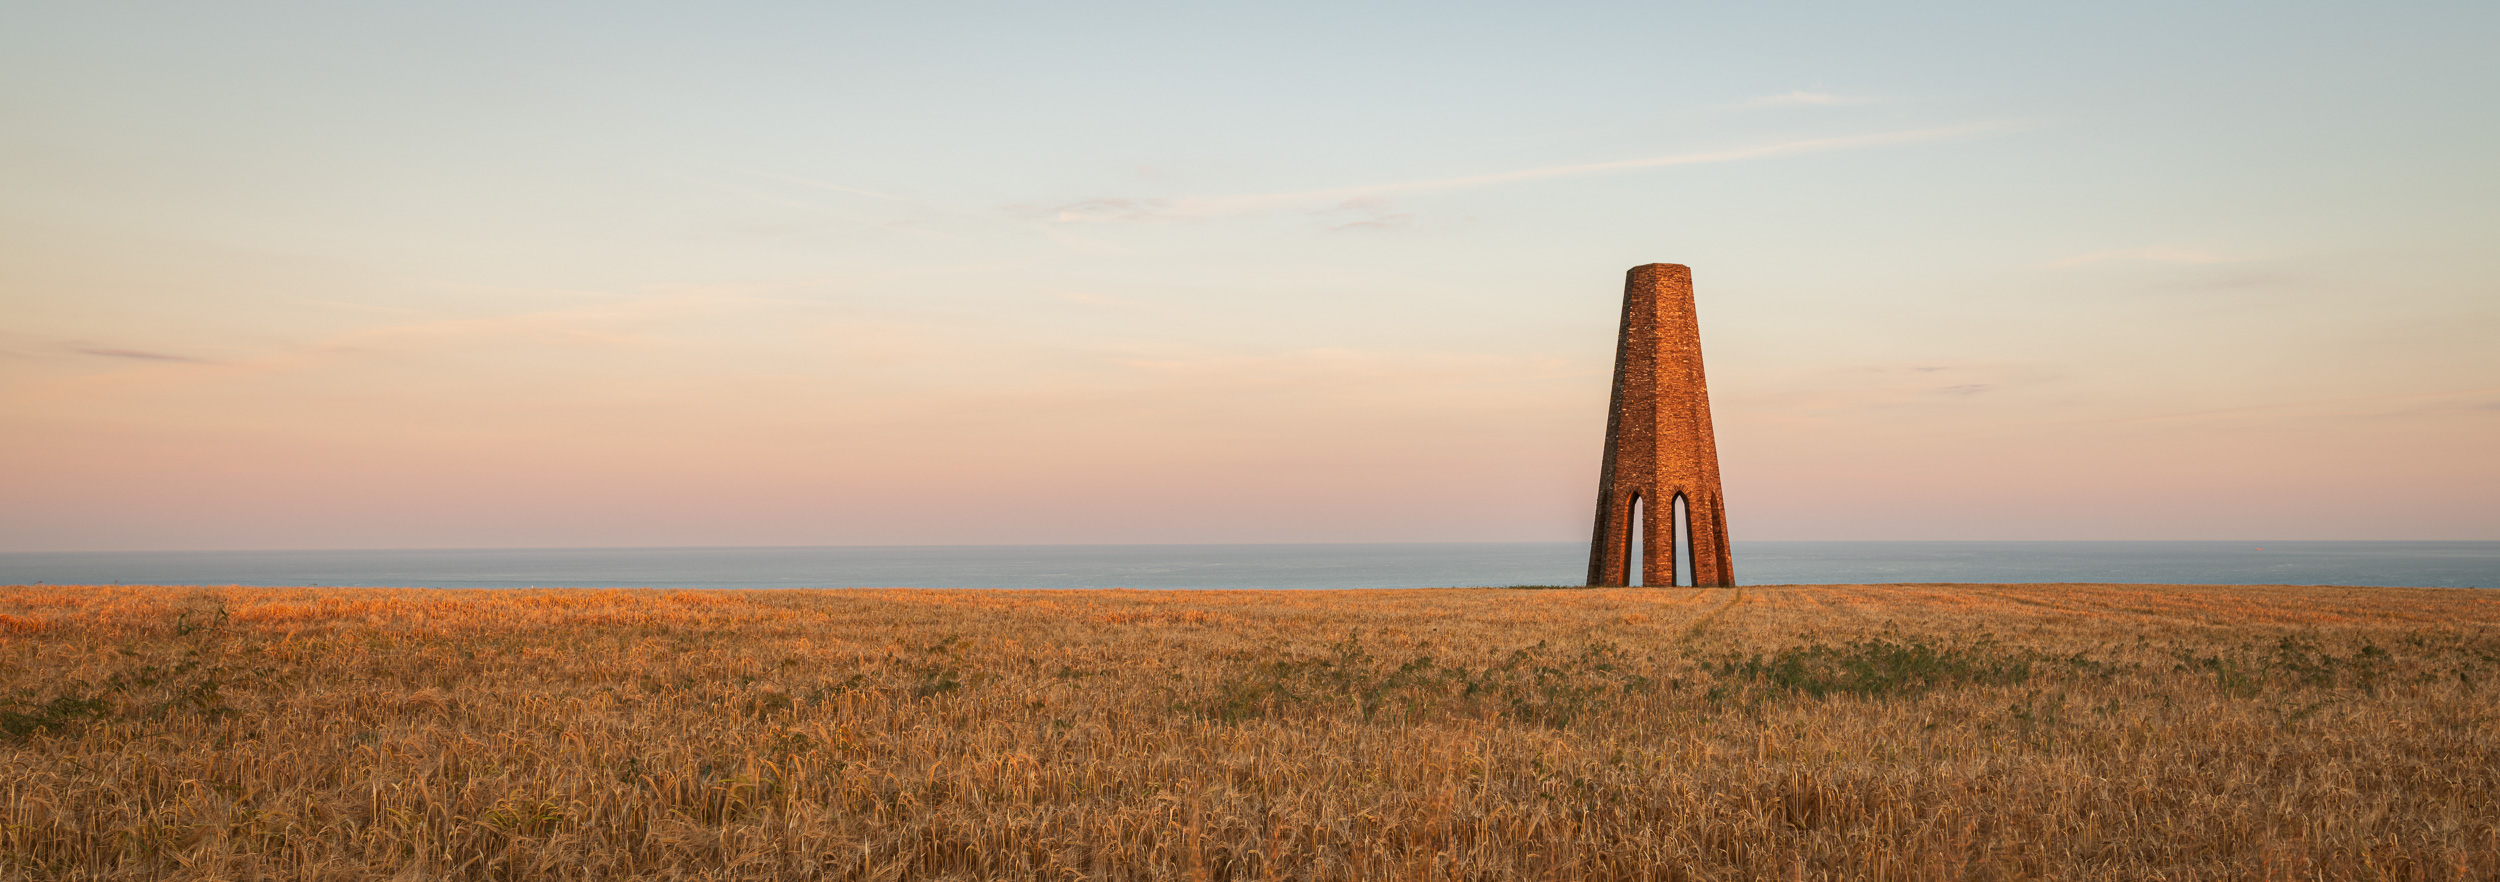 Fire Beacon, Daymark Tower, Devon  - Nikon D850, Nikkor 16-35mm f/4 at 24mm, f/13, 0.4 second at ISO 64 (single image crop at 16:7).